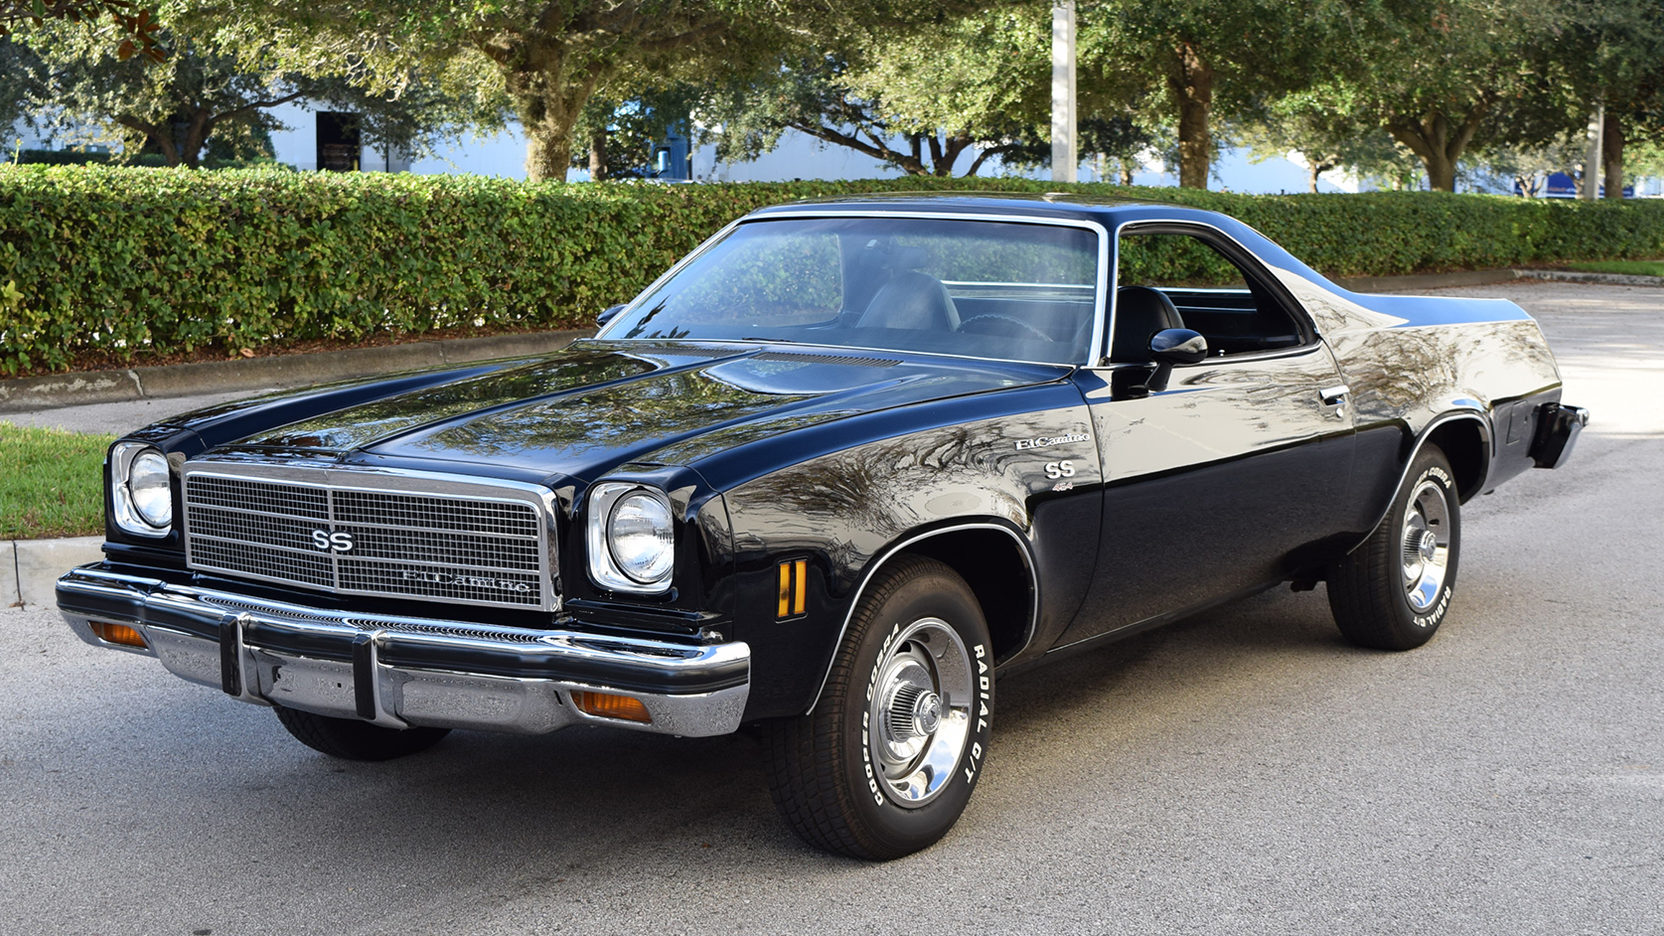 medium resolution of 1974 chevrolet el camino ss 1 full screen